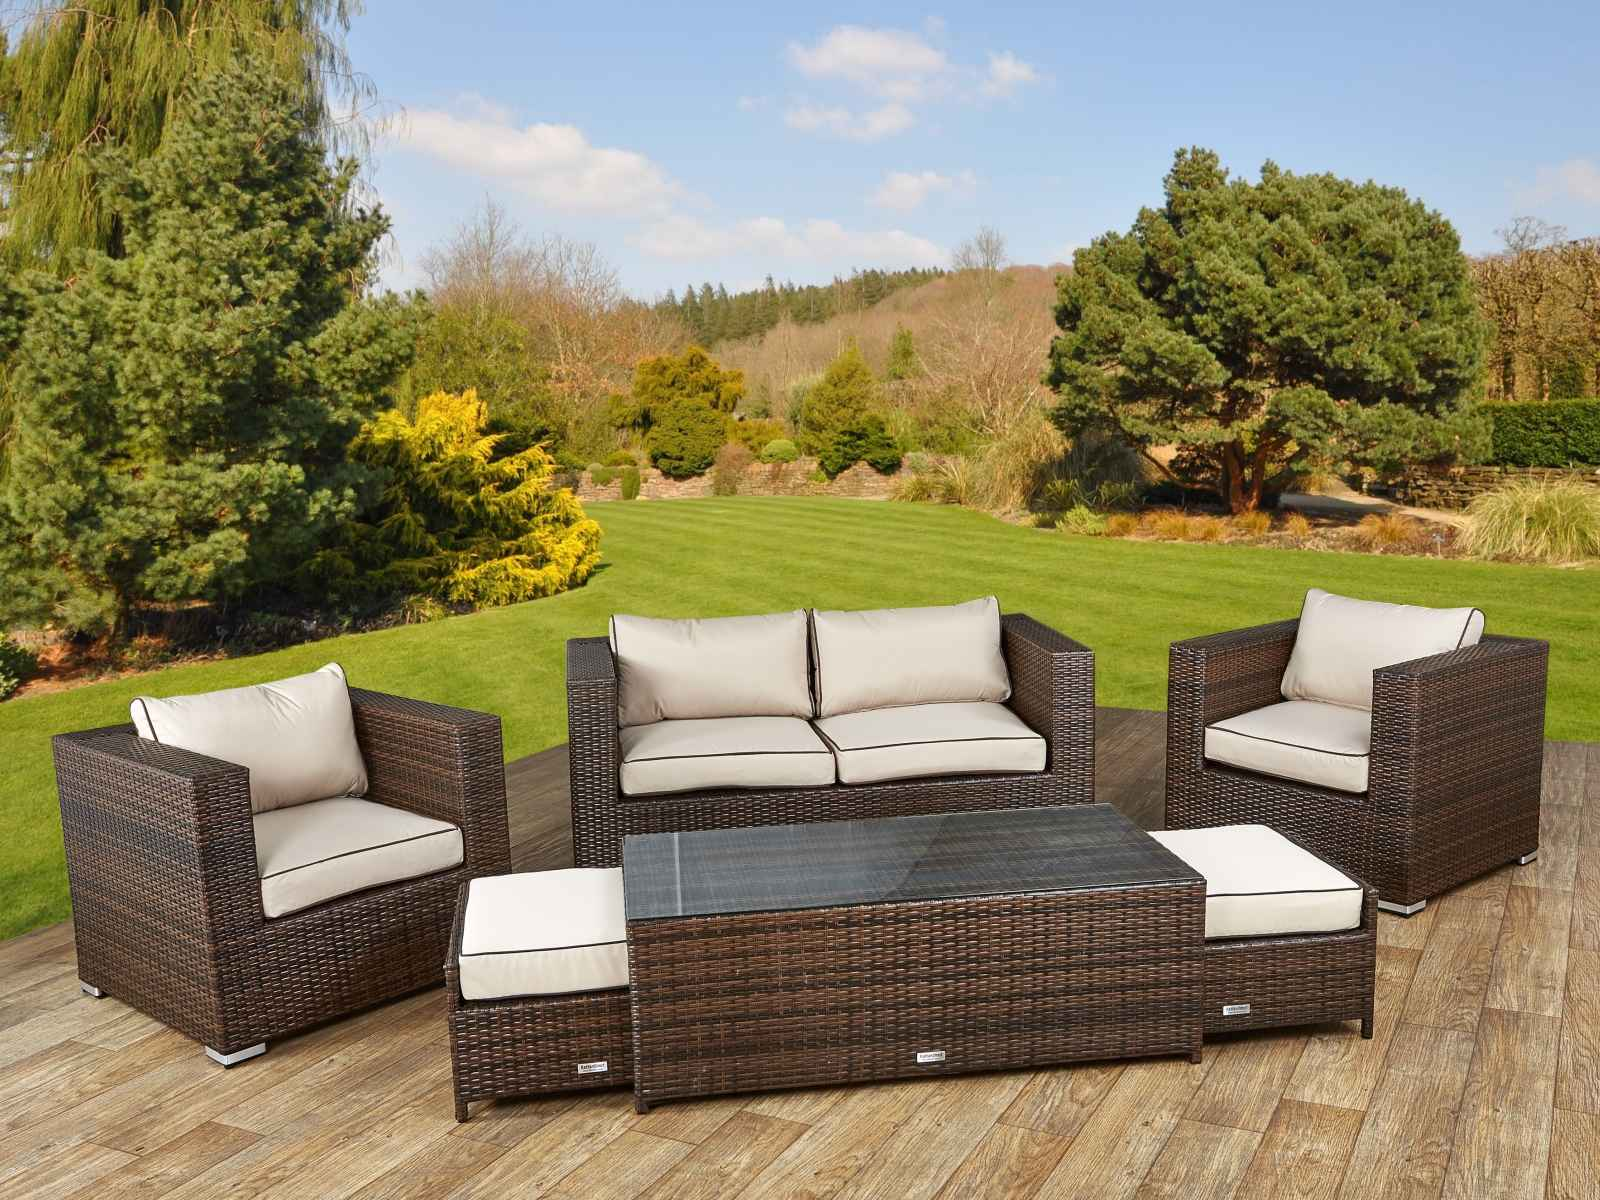 Rattan Furniture Outdoor Wicker Sets Photo 12 Share. Wicker Garden Sofas Uk   Modern Sofas